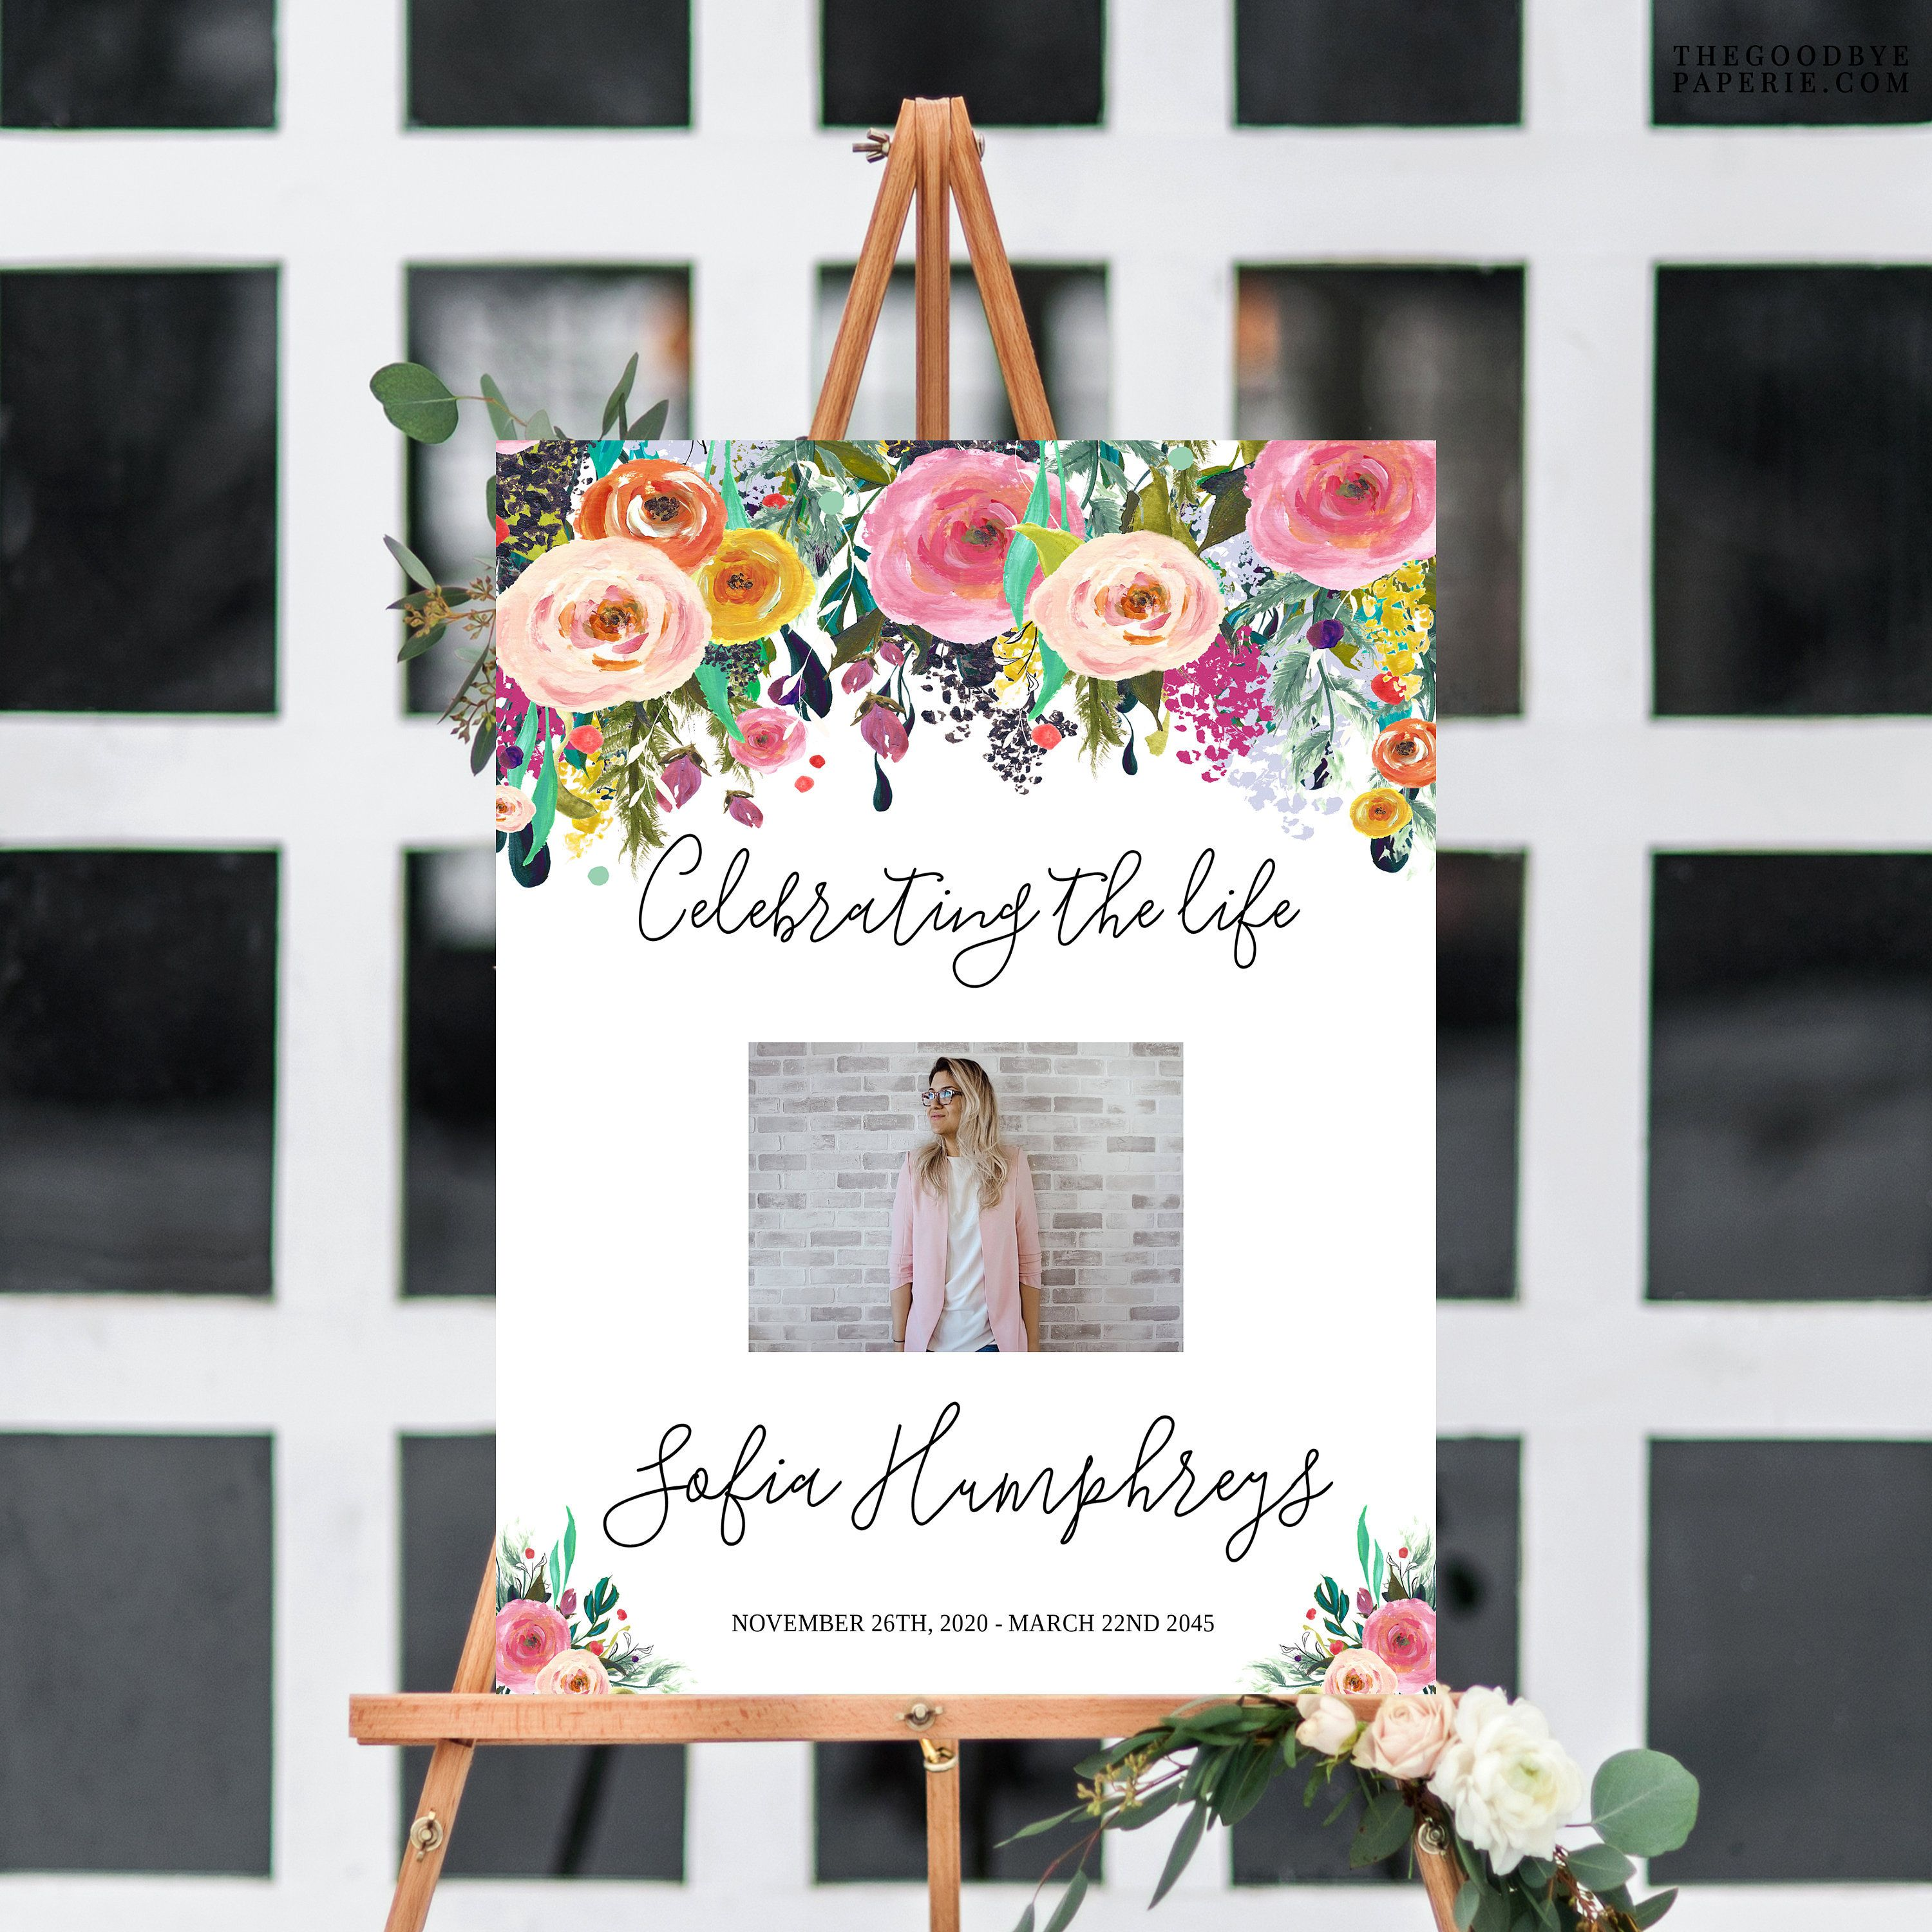 Floral Celebration Of Life Decorations Memorial Service Ideas Funeral Sign Funeral Poster Funeral Decor Memorial Decorations Large Funeral Posters Celebration Of Life Memorial Service